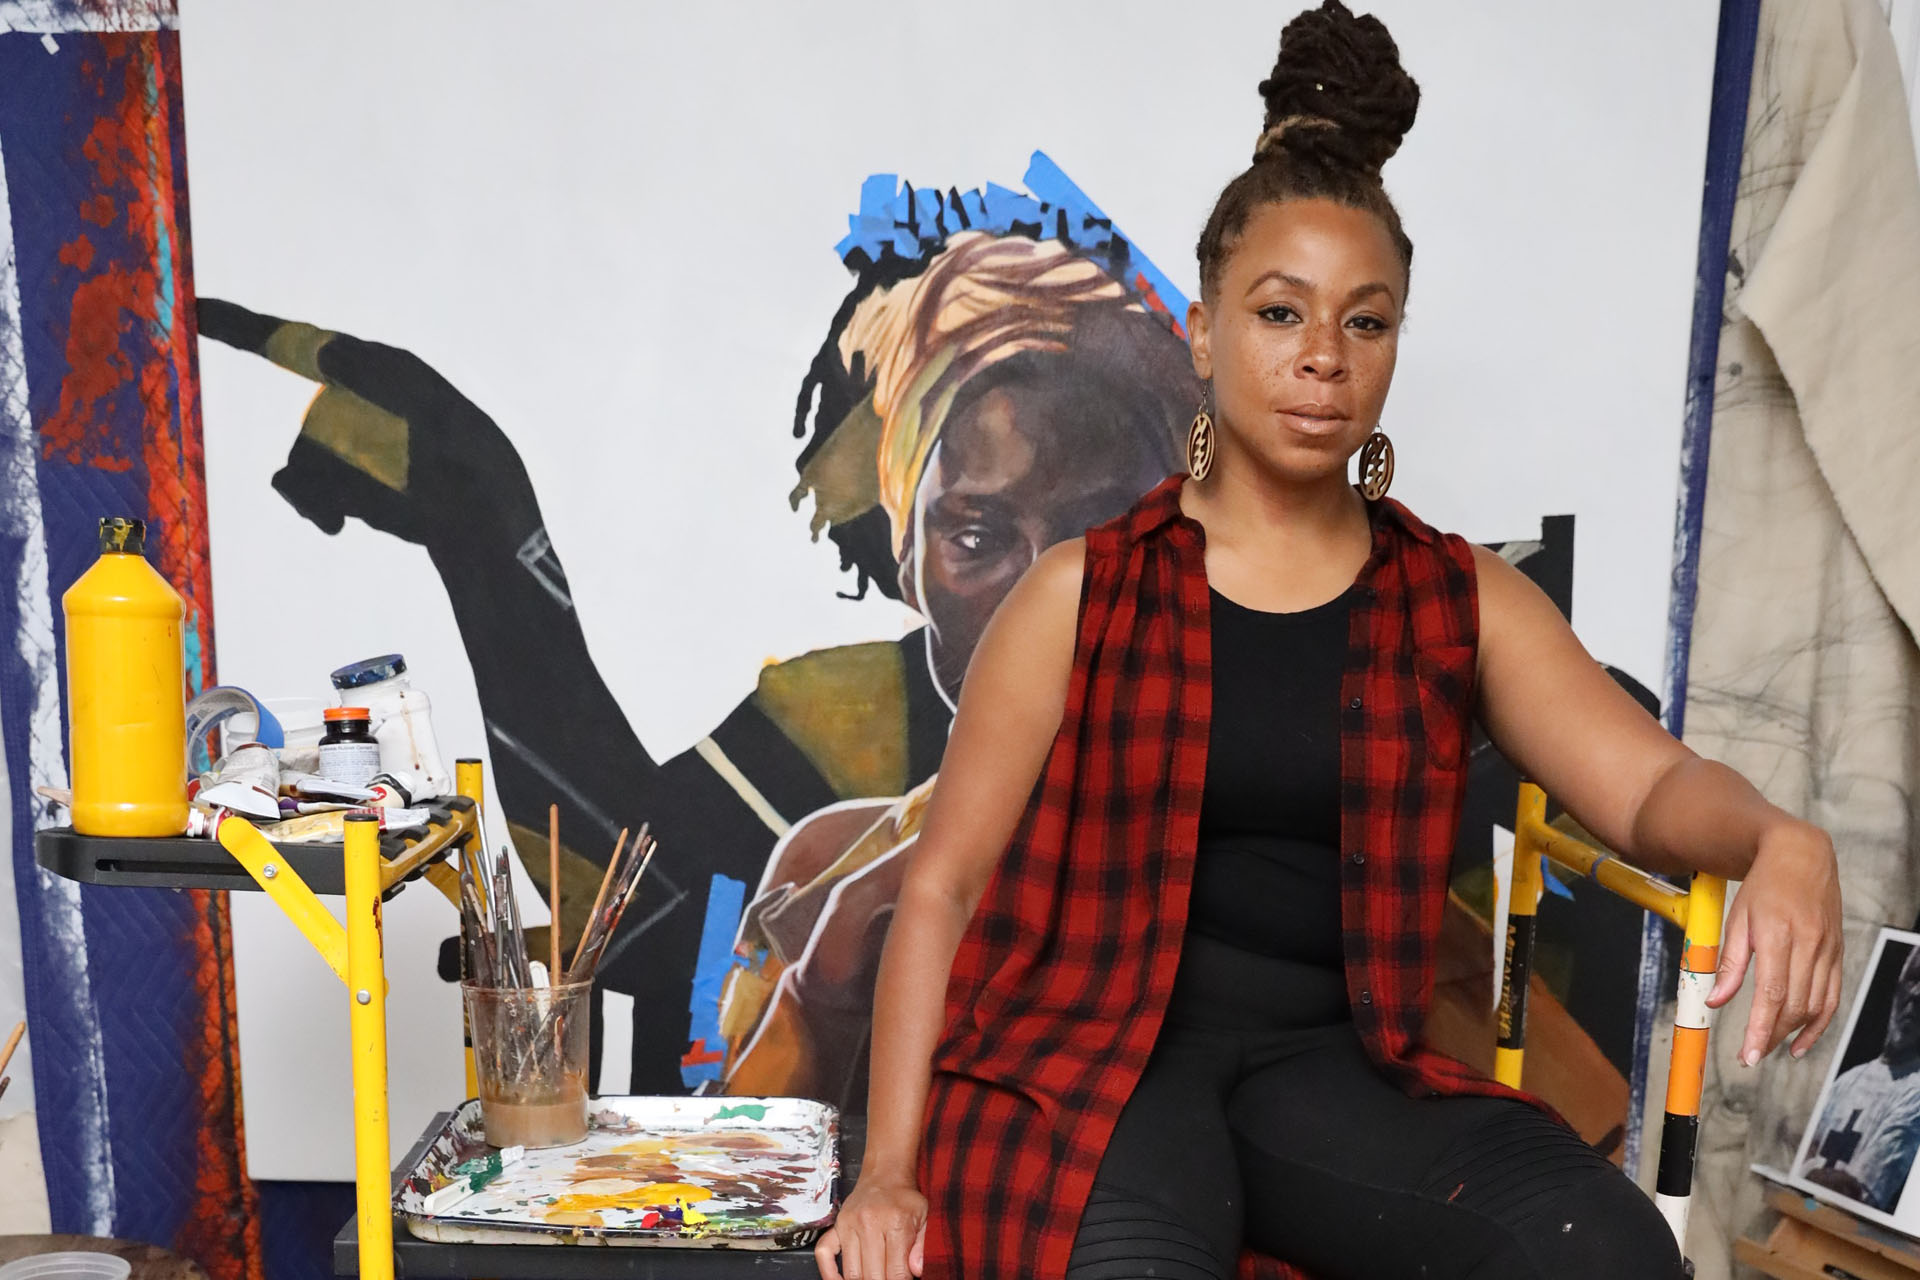 DETOUR DETROIT: Painter Sydney G. James is making her mark on Detroit's art scene | DETOUR